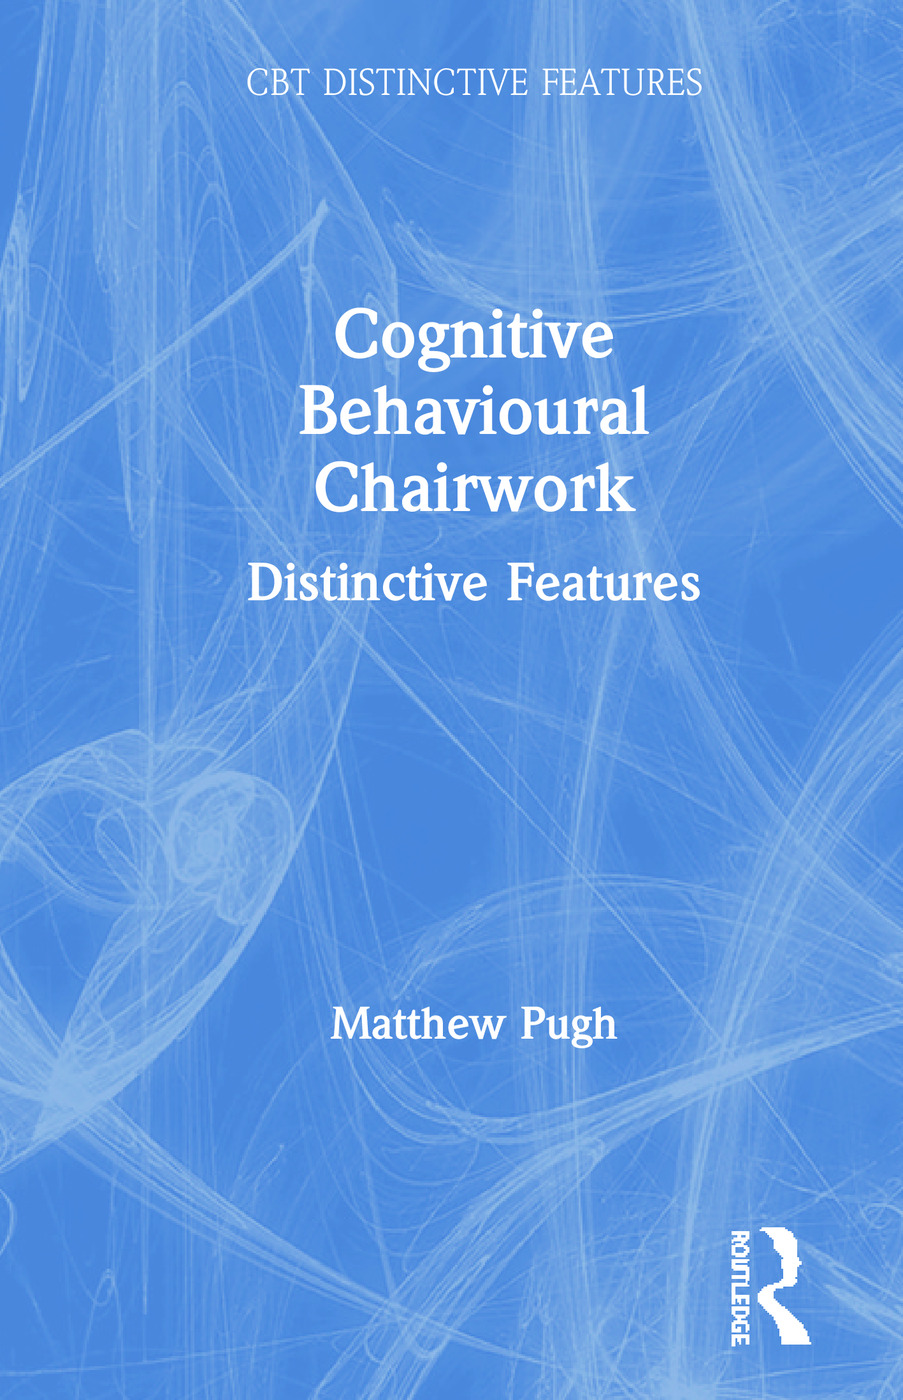 Chairwork in cognitive and behavioural therapies